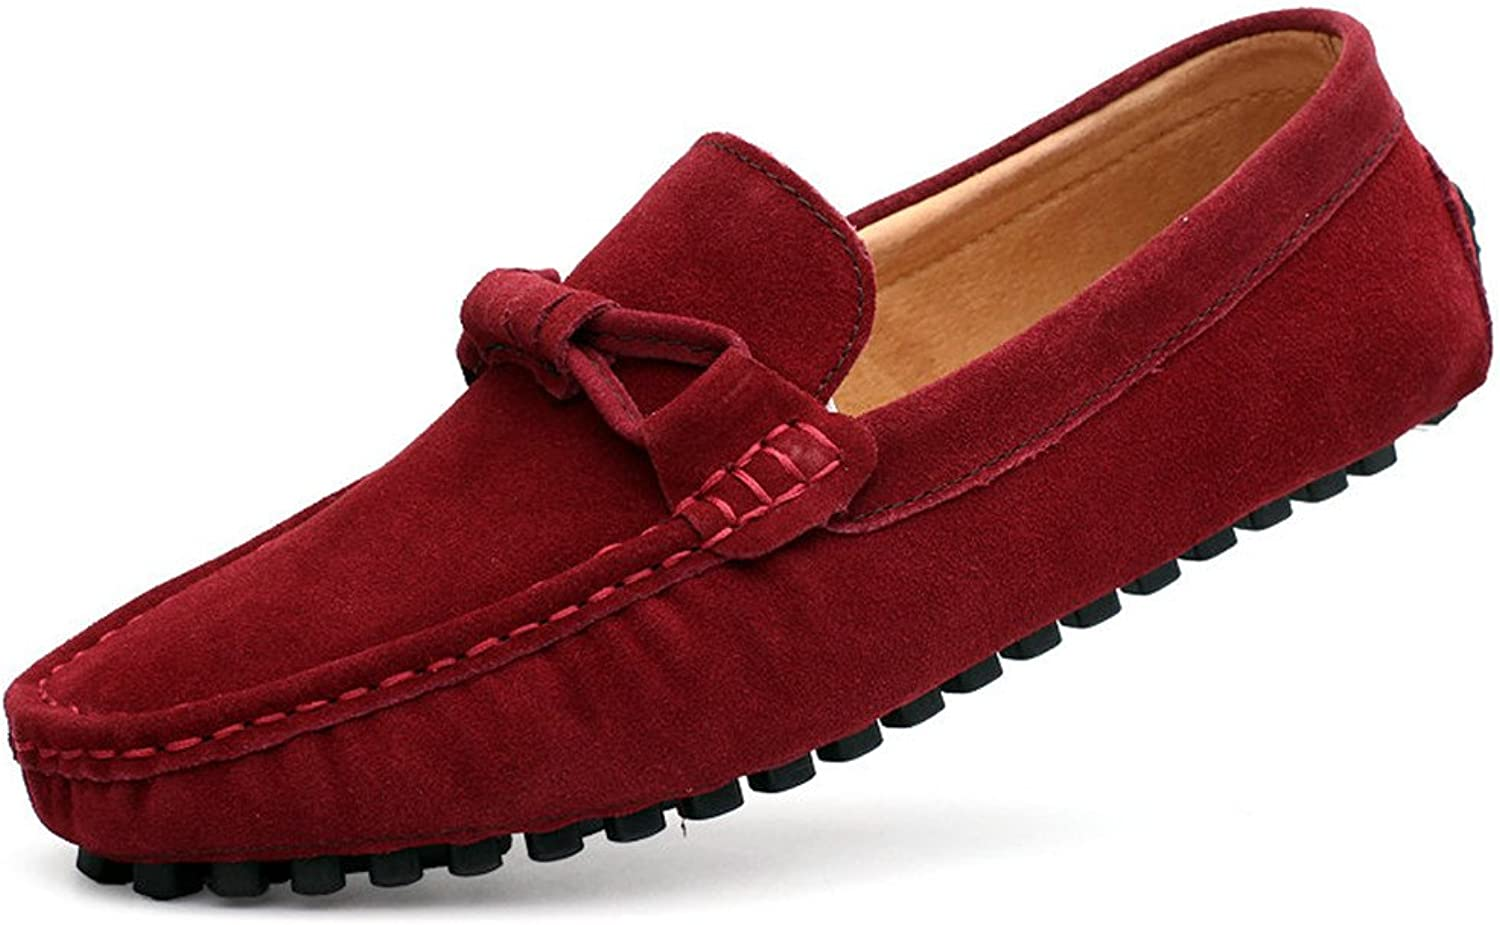 Men Cow Suede Loafers Spring Autumn Genuine Leather Driving Moccasins Slip On Men Casual shoes Big Size 3846